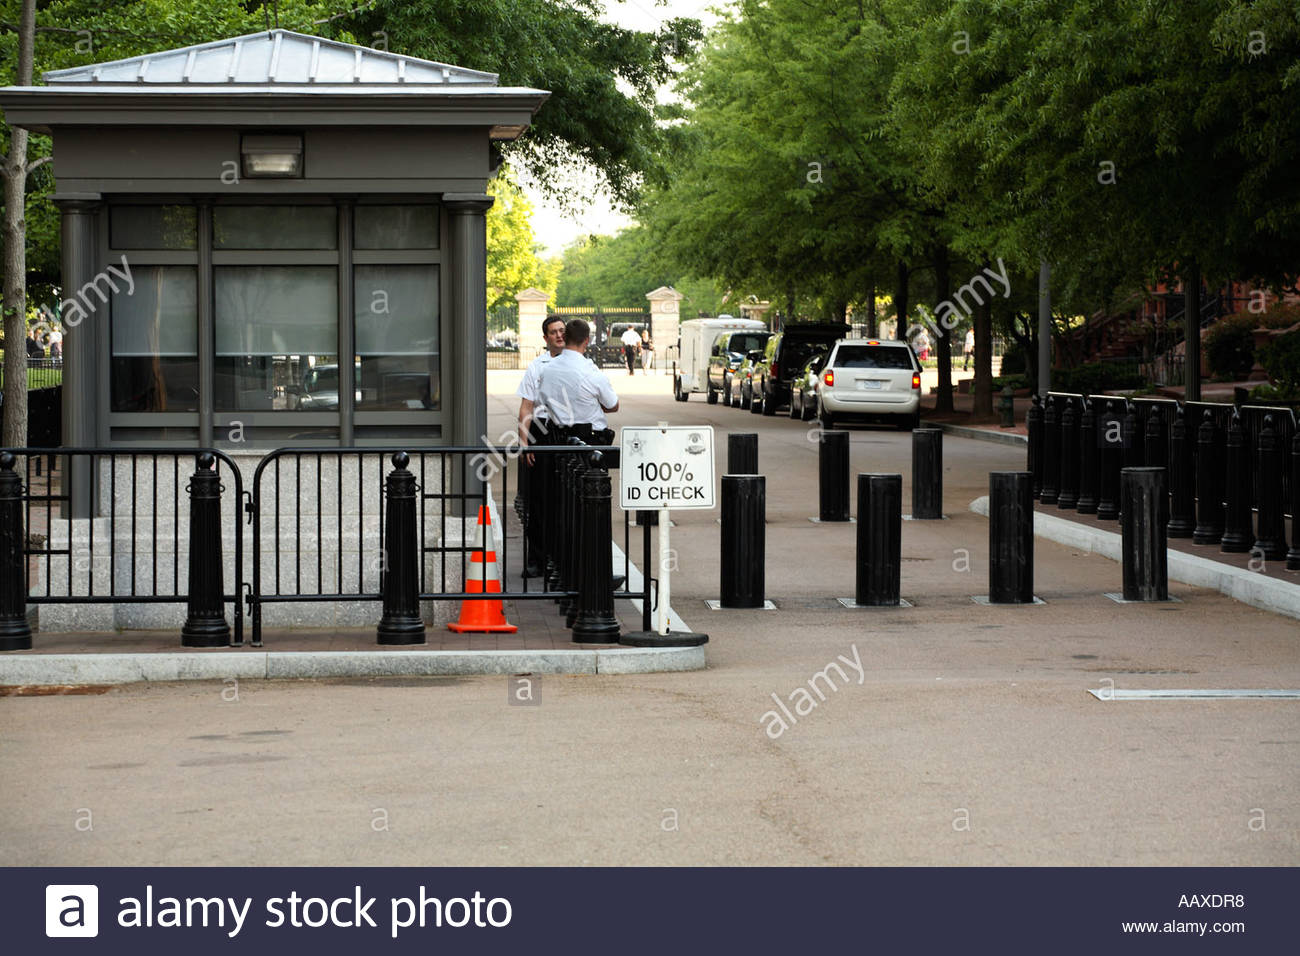 thesis security guard and automated gate The outcome of the thesis is that the security guards in general will be orientated properly  which are automated  if the security guard that is giving the .